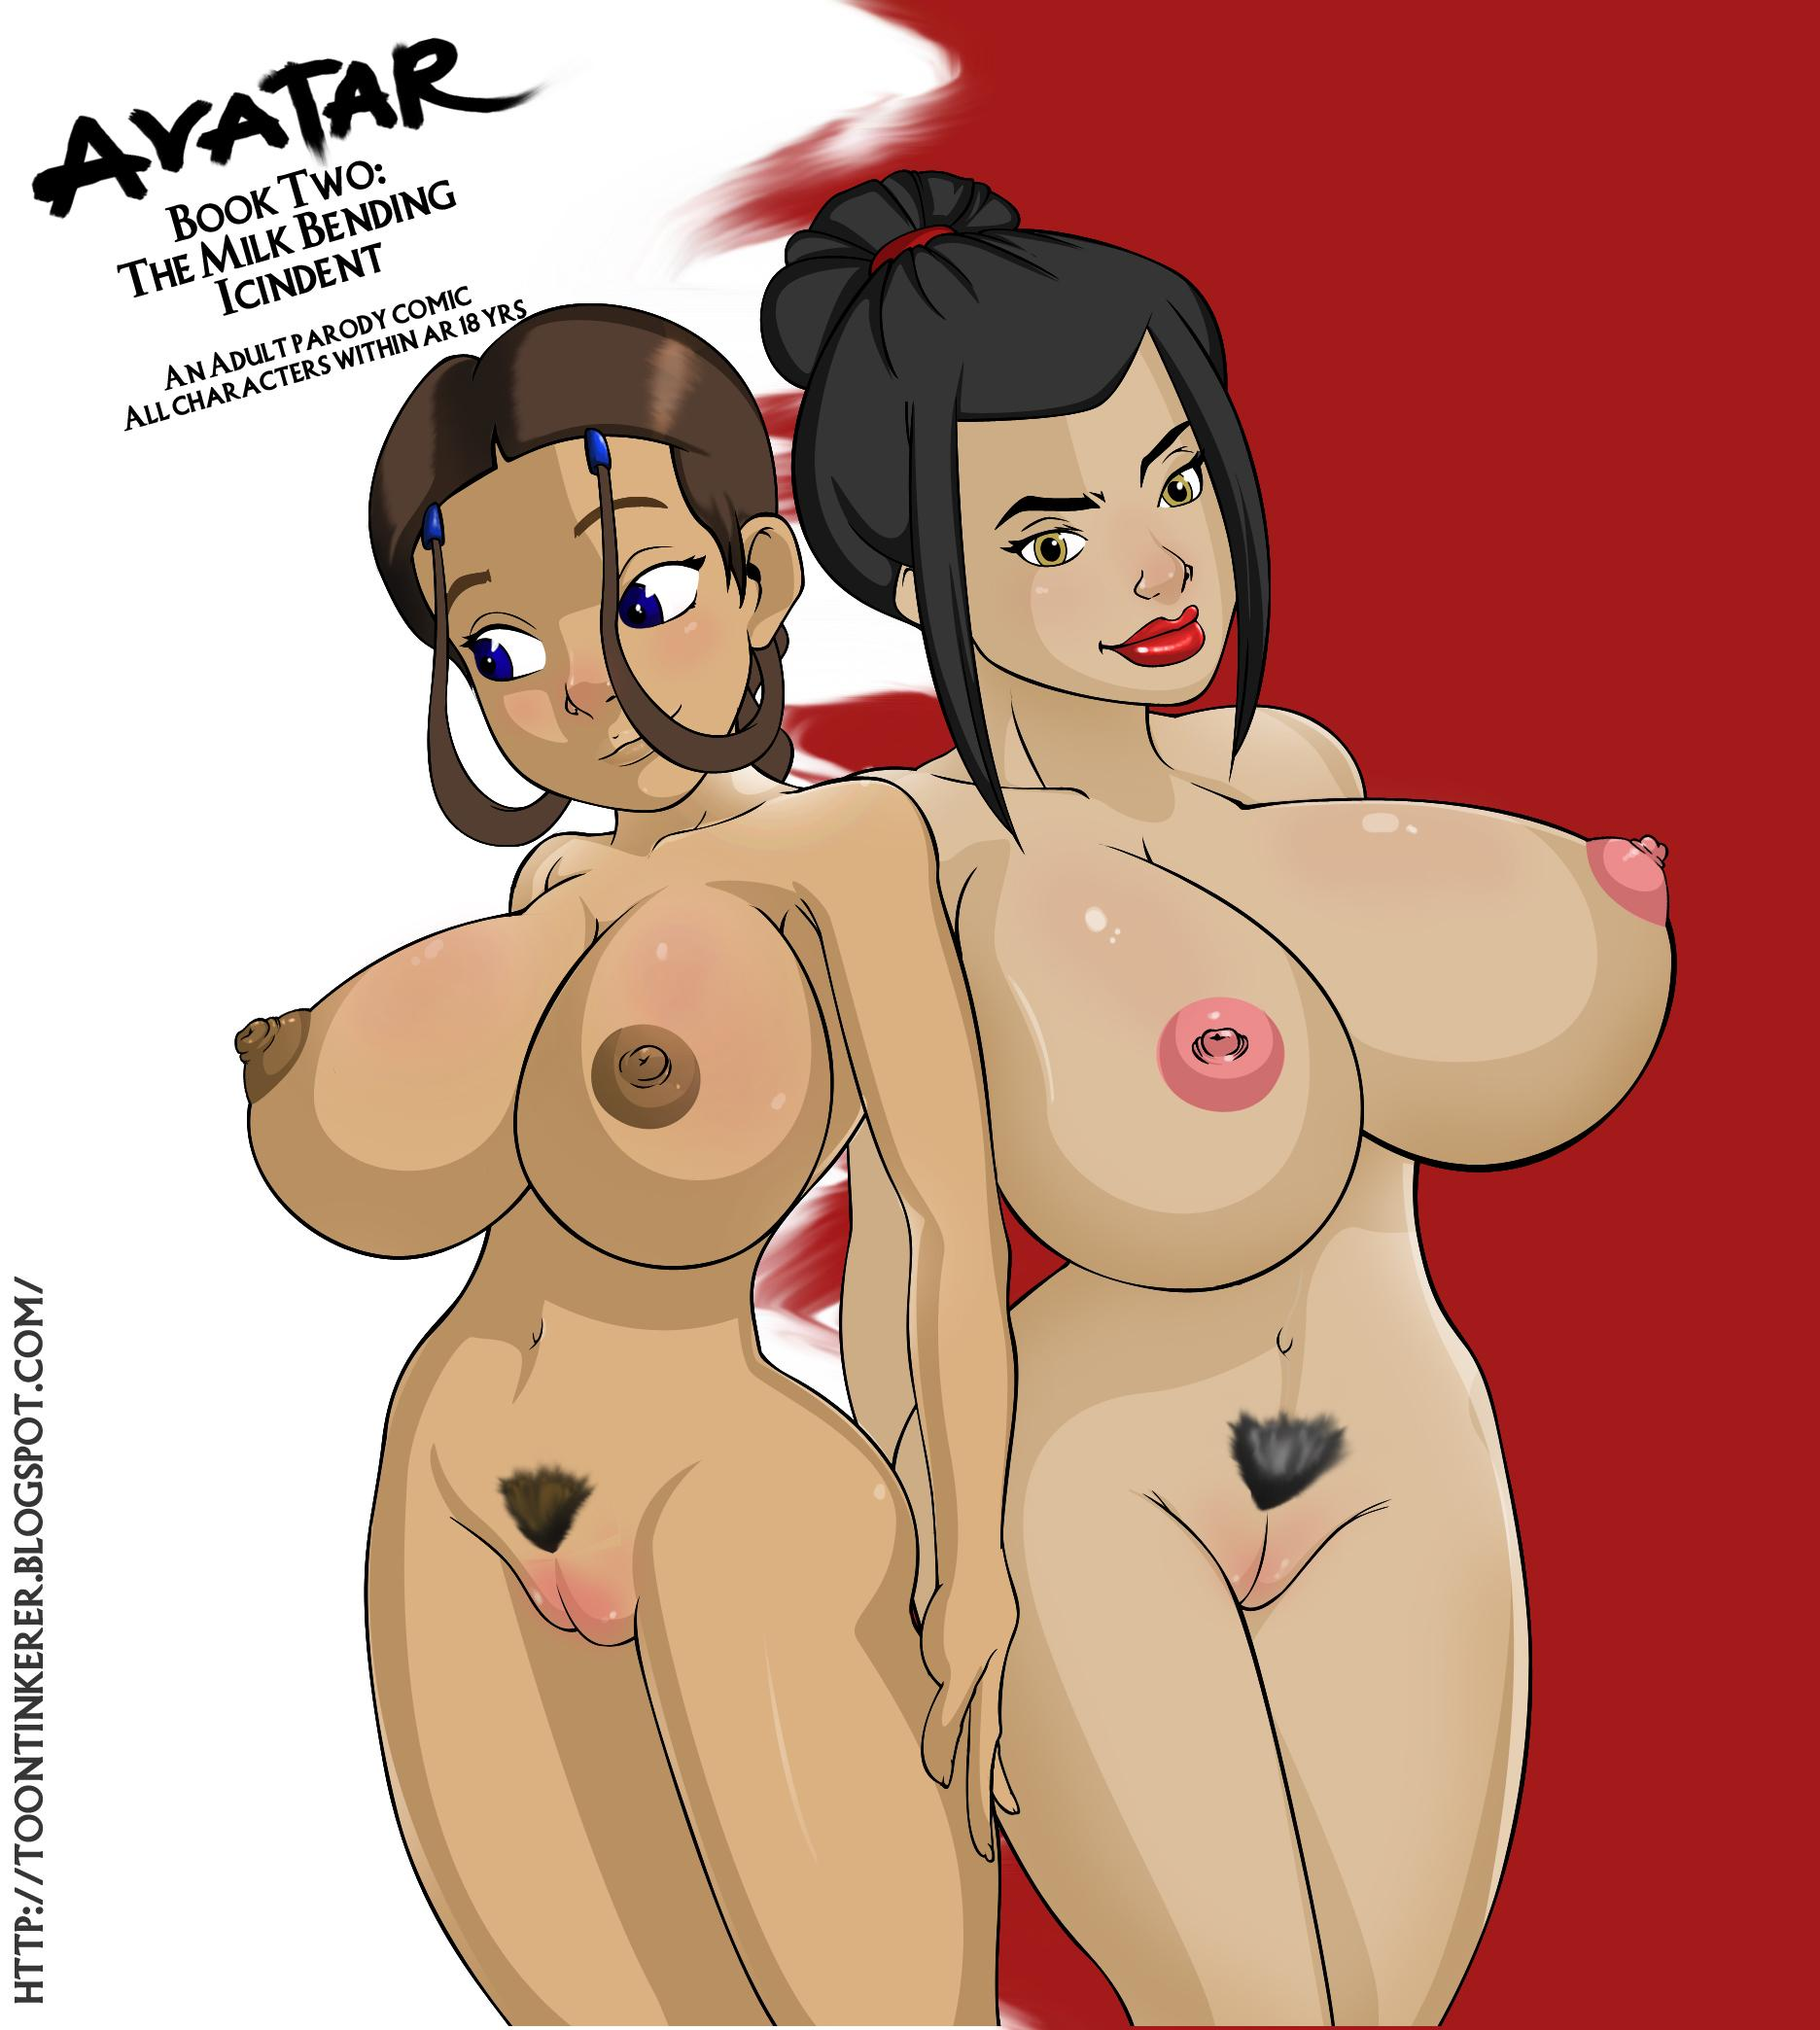 SureFap xxx porno Avatar the Last Airbender - [Toontinkerer] Book Two - The Milk Bending Icindent